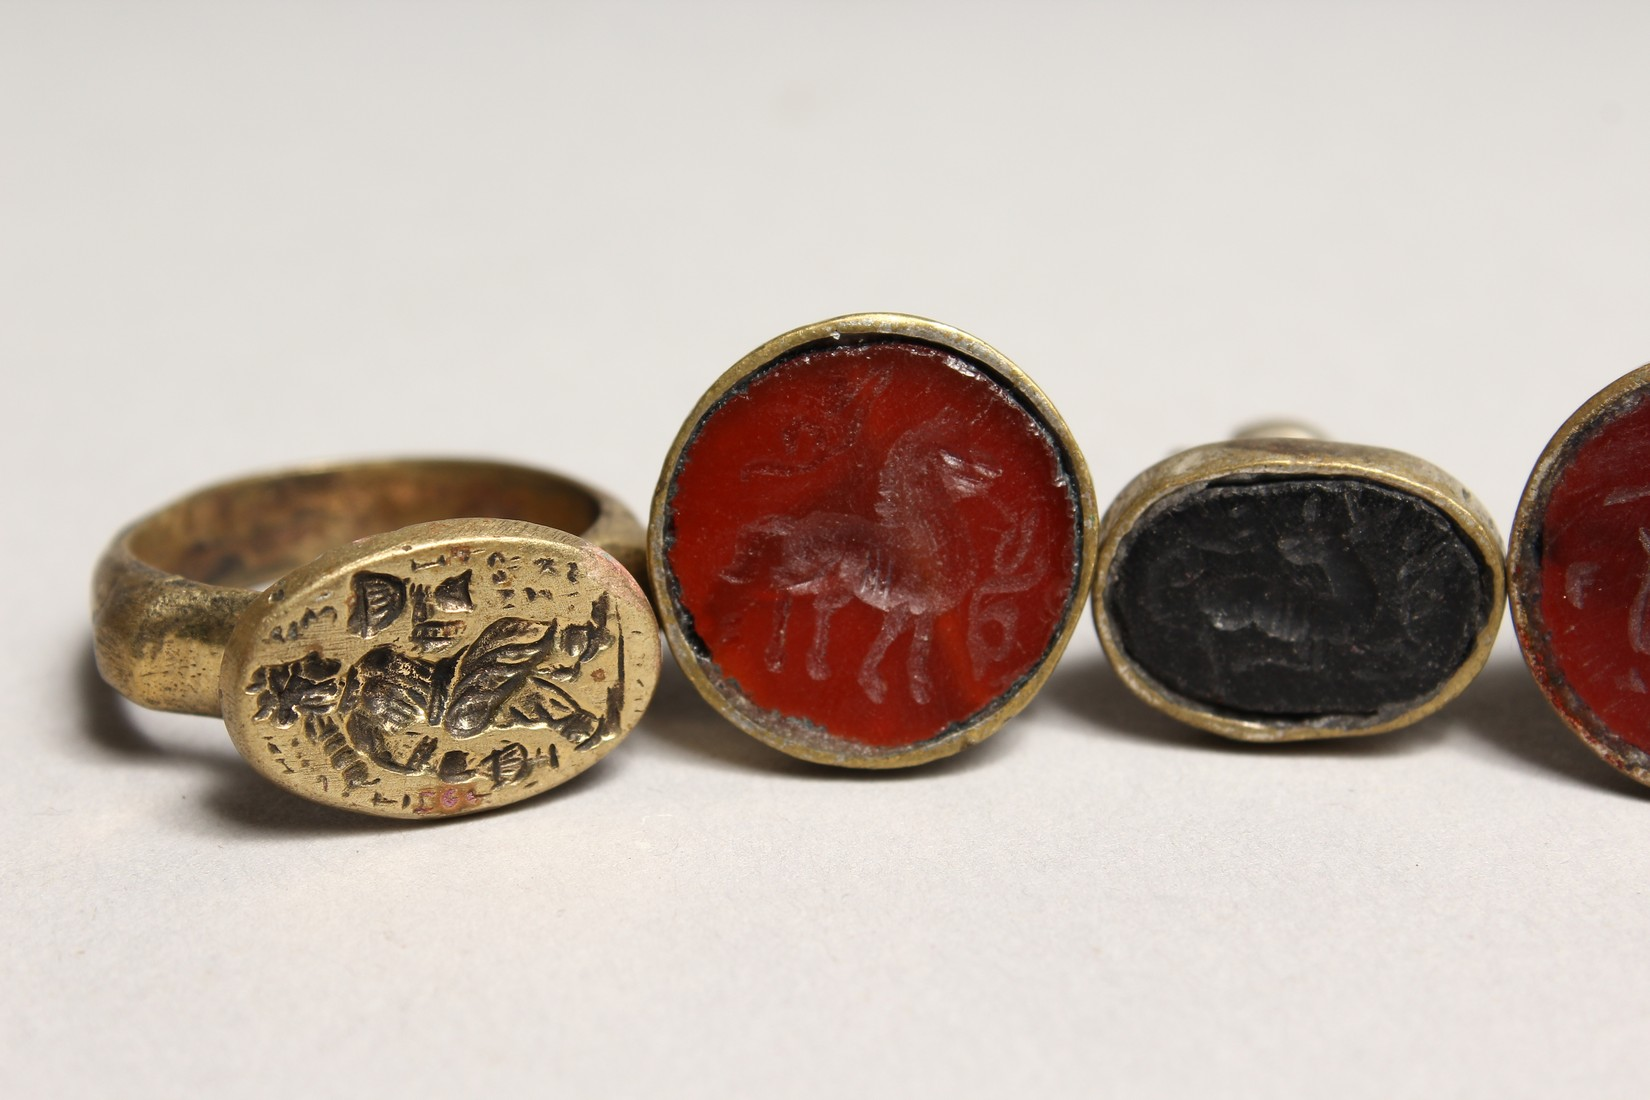 TWO SMALL RINGS AND THREE SEALS (5). - Image 4 of 5